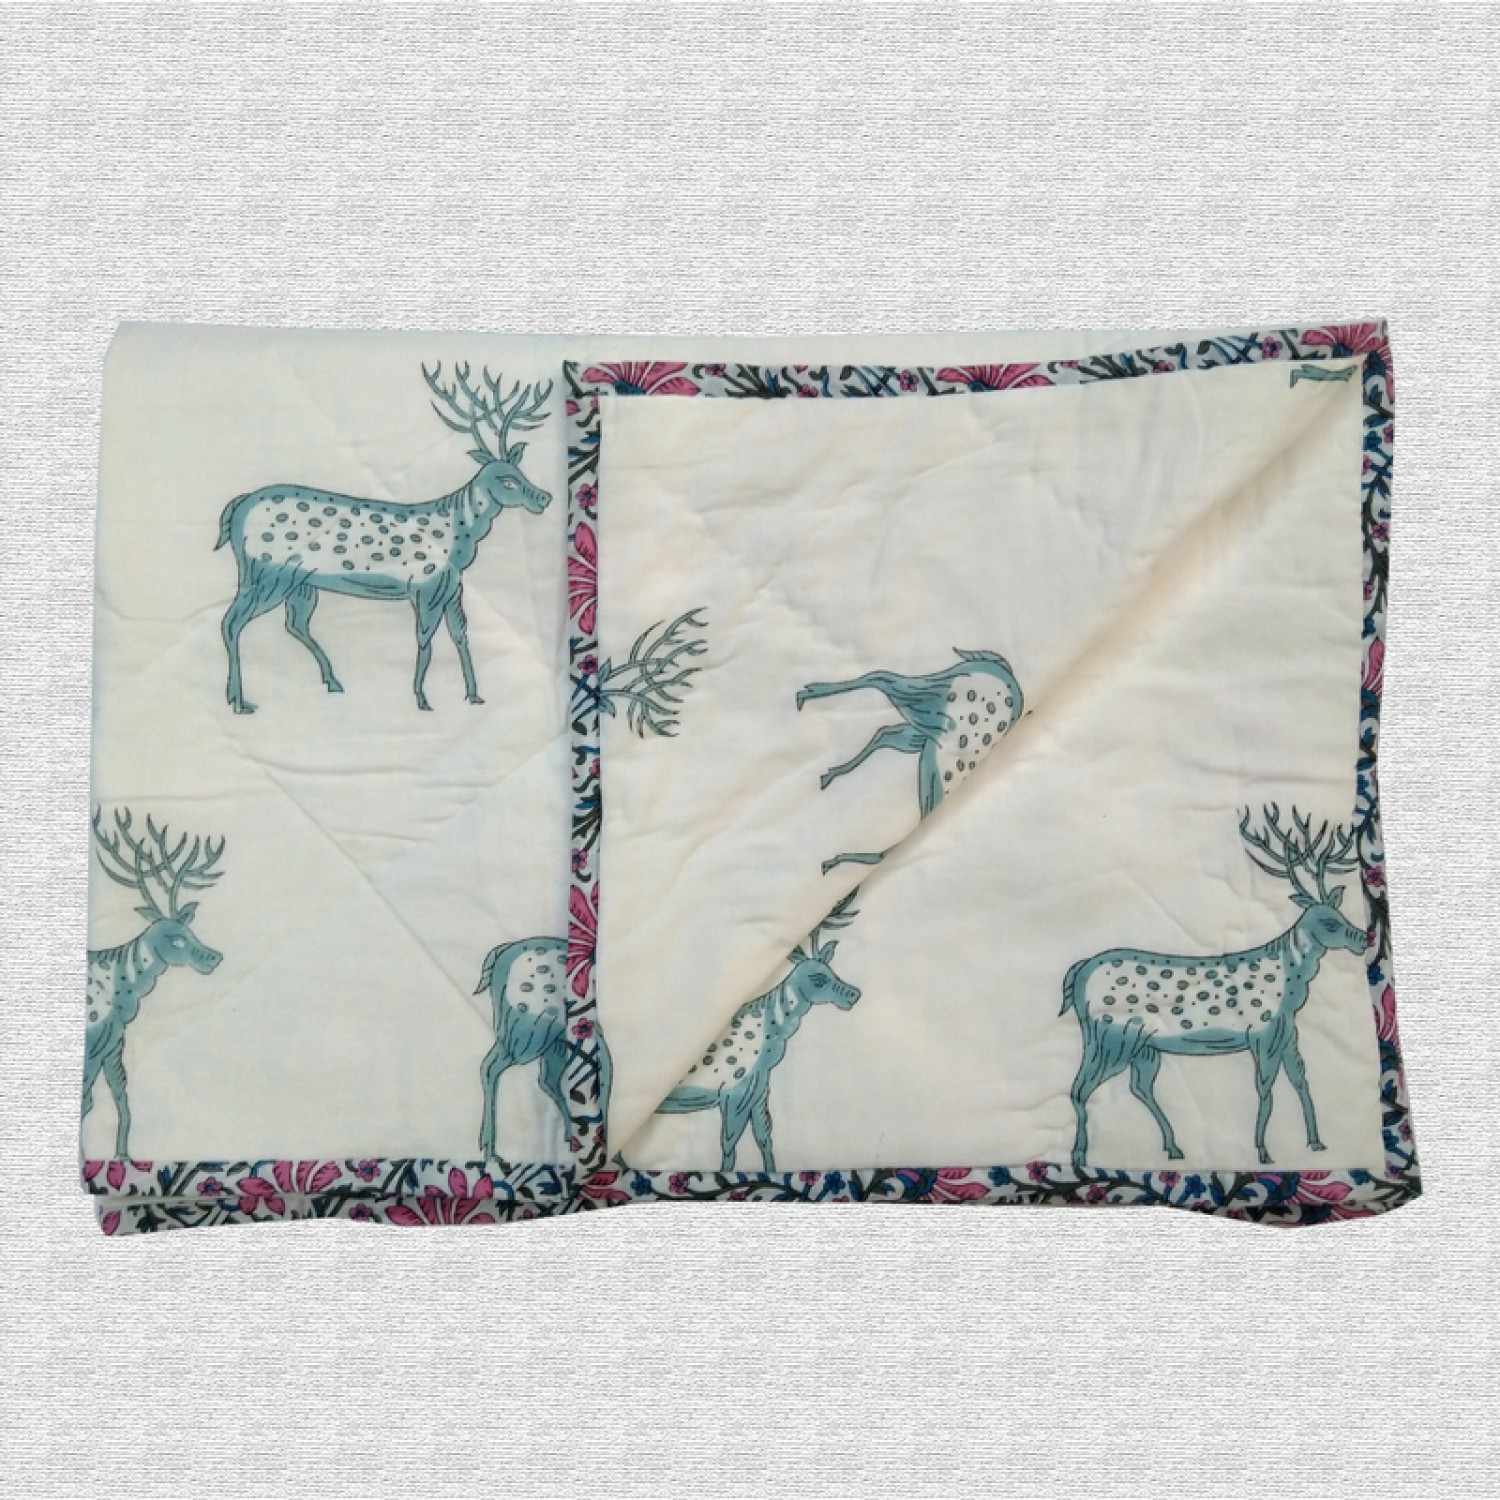 Deer Print Hand Block Printed Hand Quilted Cotton Baby Quilt